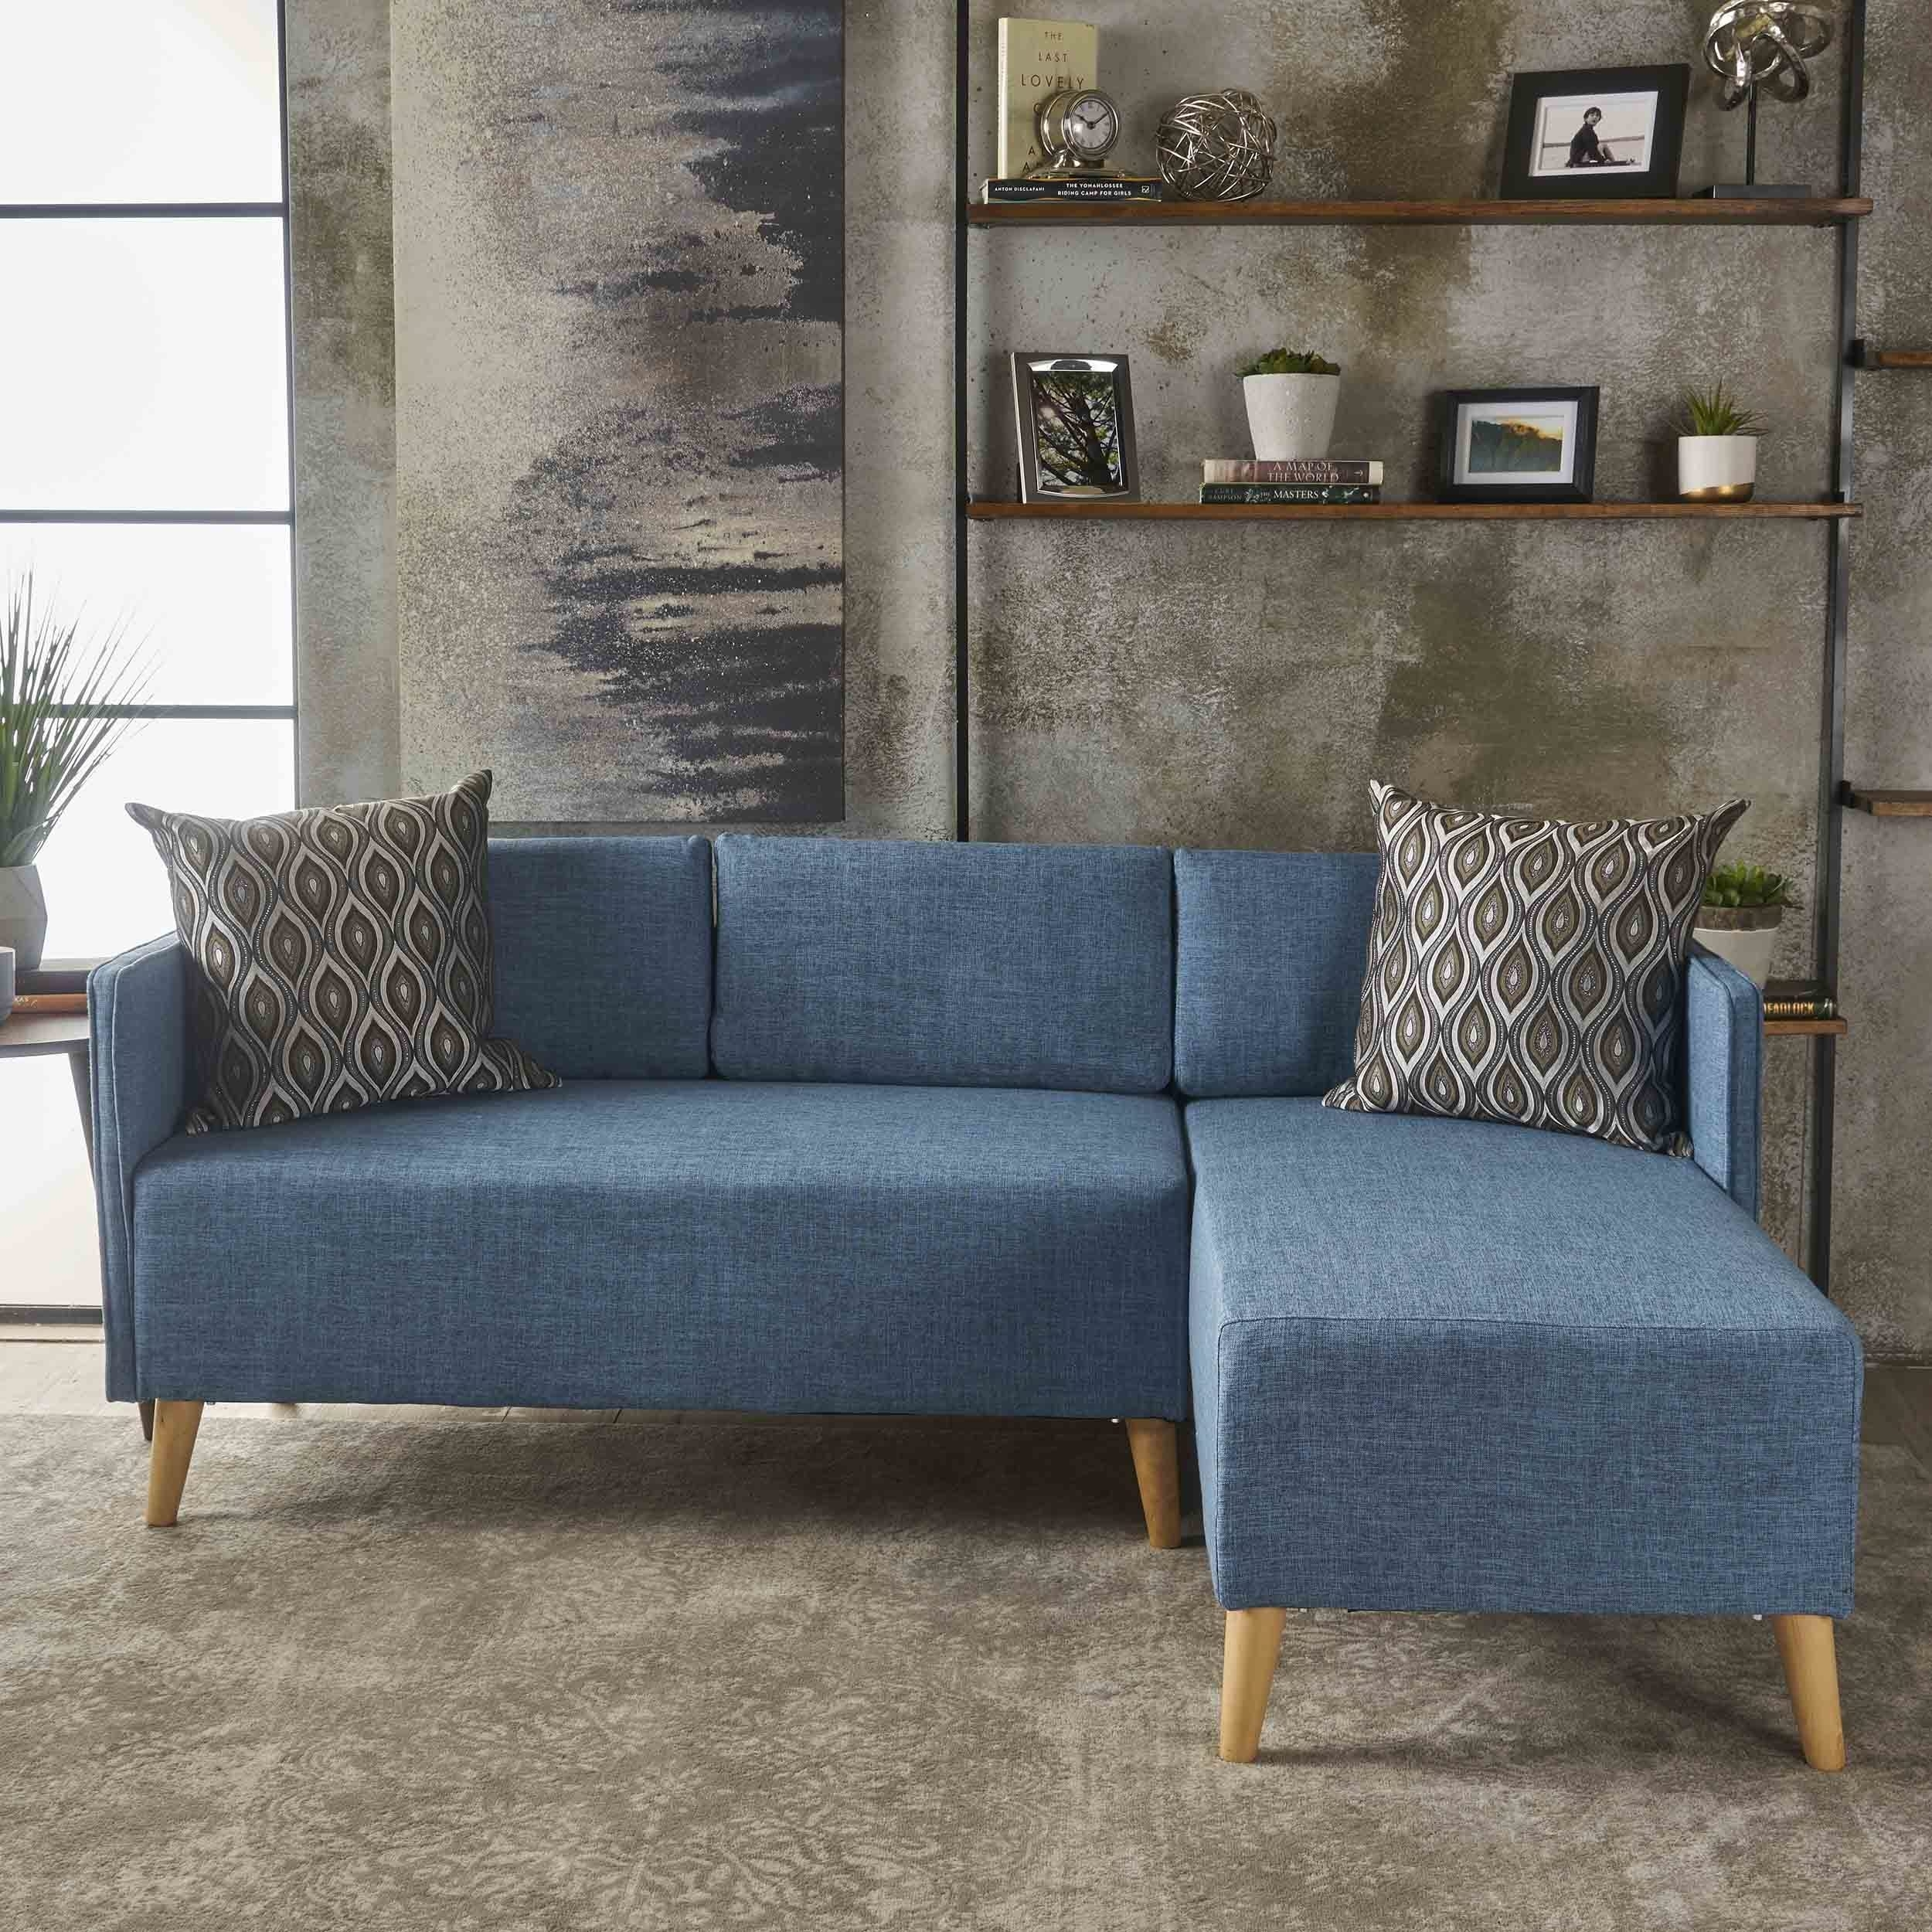 2 Piece Chaise Sectional Sofa | Baci Living Room within Tenny Dark Grey 2 Piece Right Facing Chaise Sectionals With 2 Headrest (Image 3 of 30)